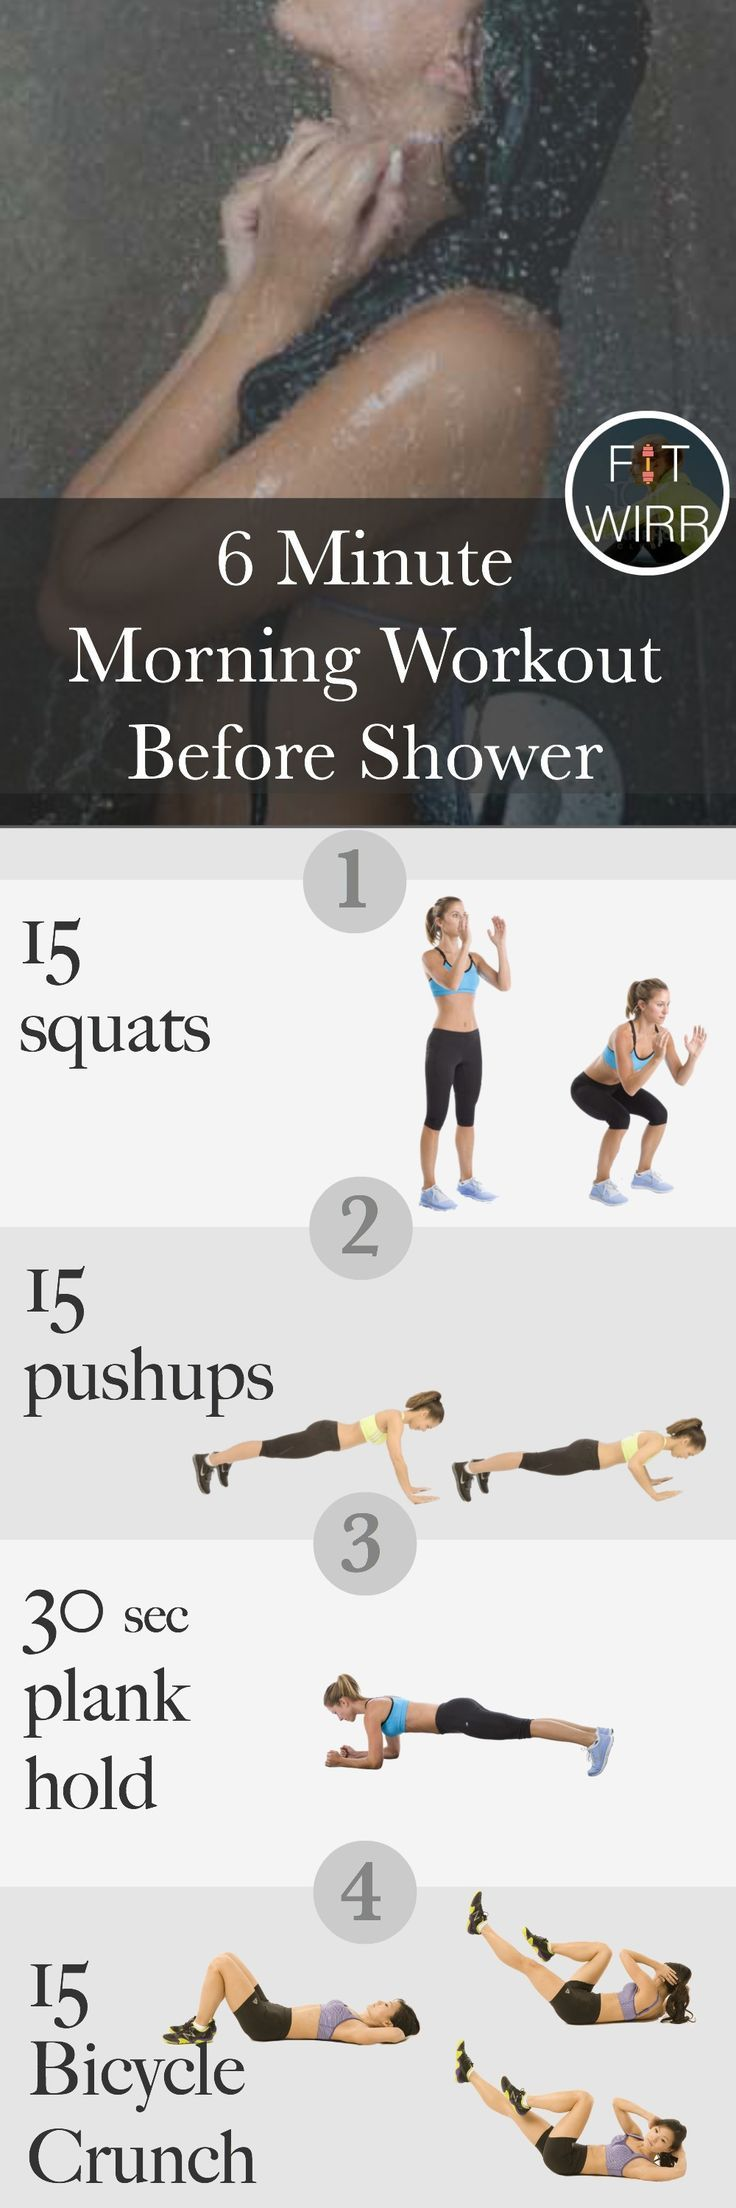 6 minute workout when your